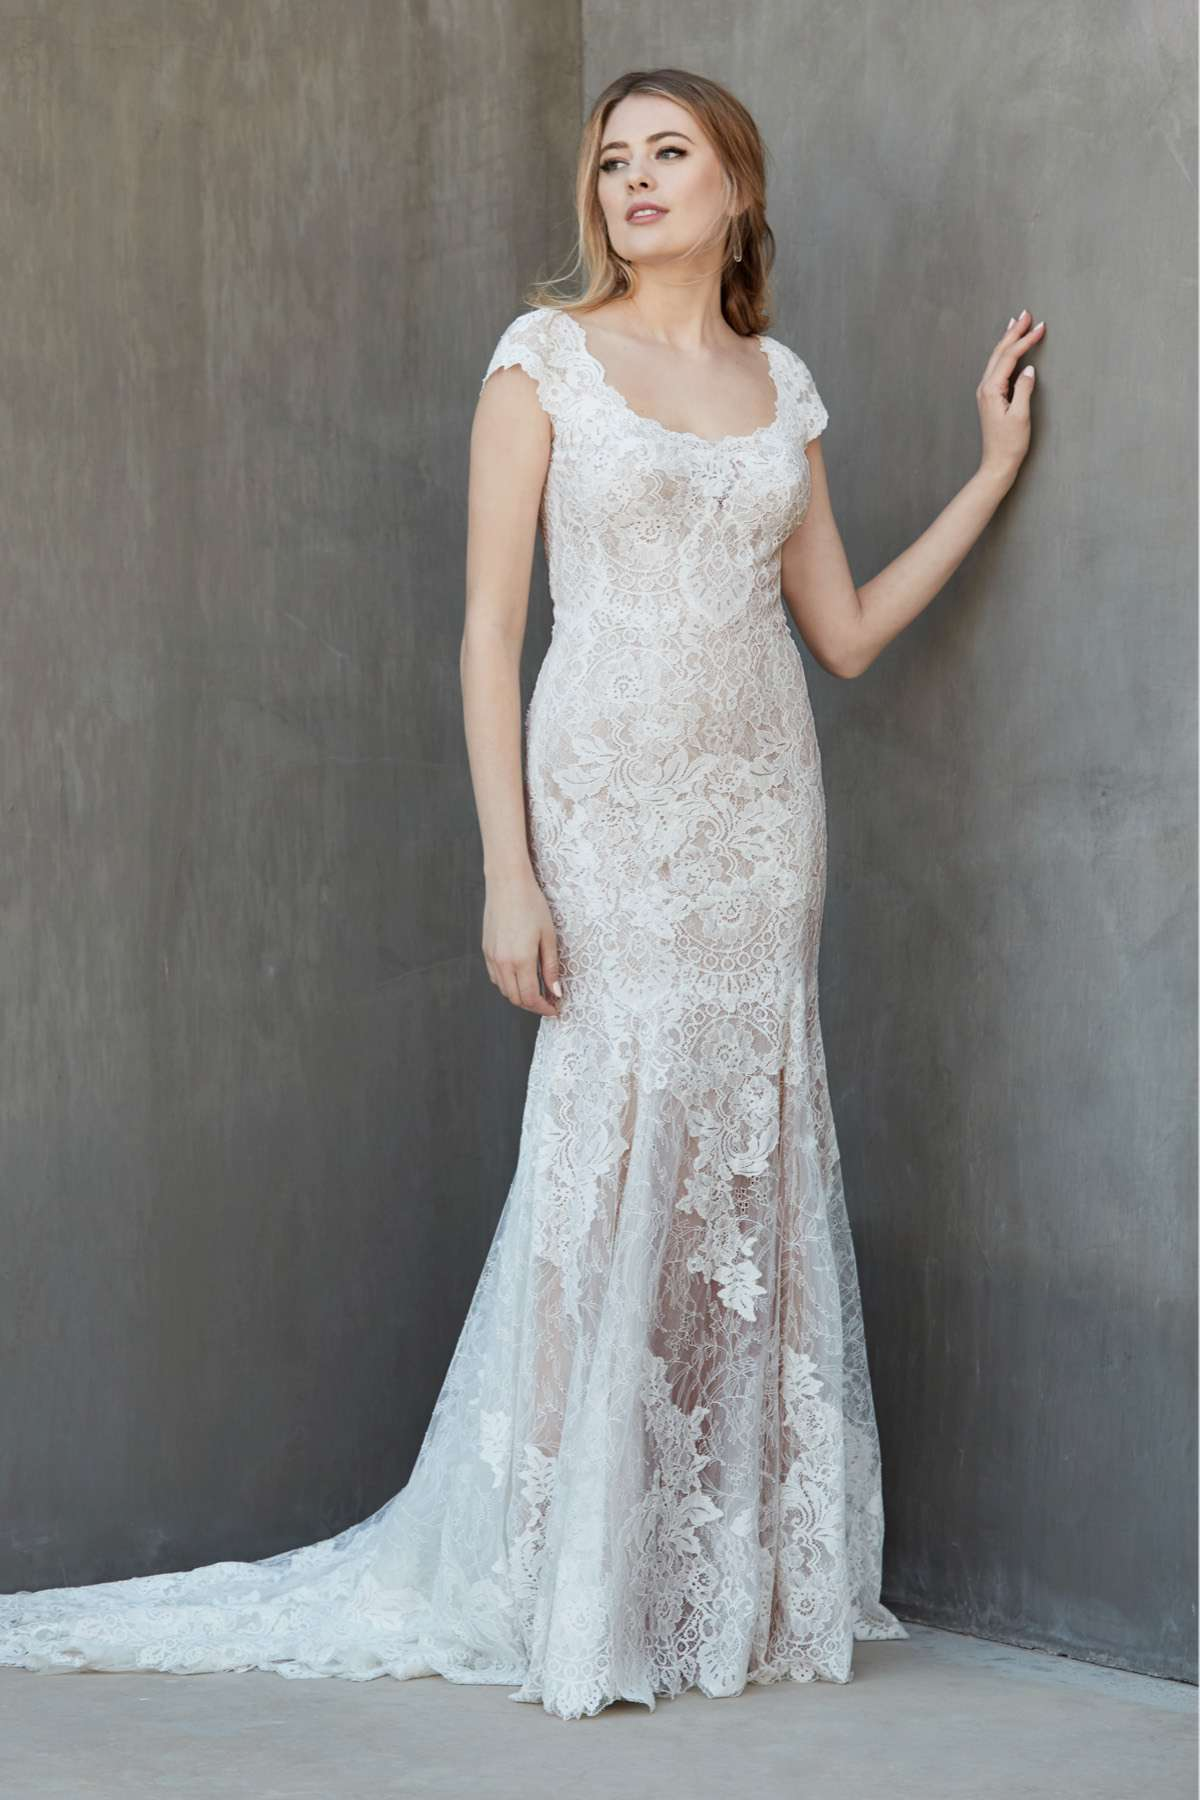 Model in allover lace fit and flare gown with a scoop neckline and cap sleeves